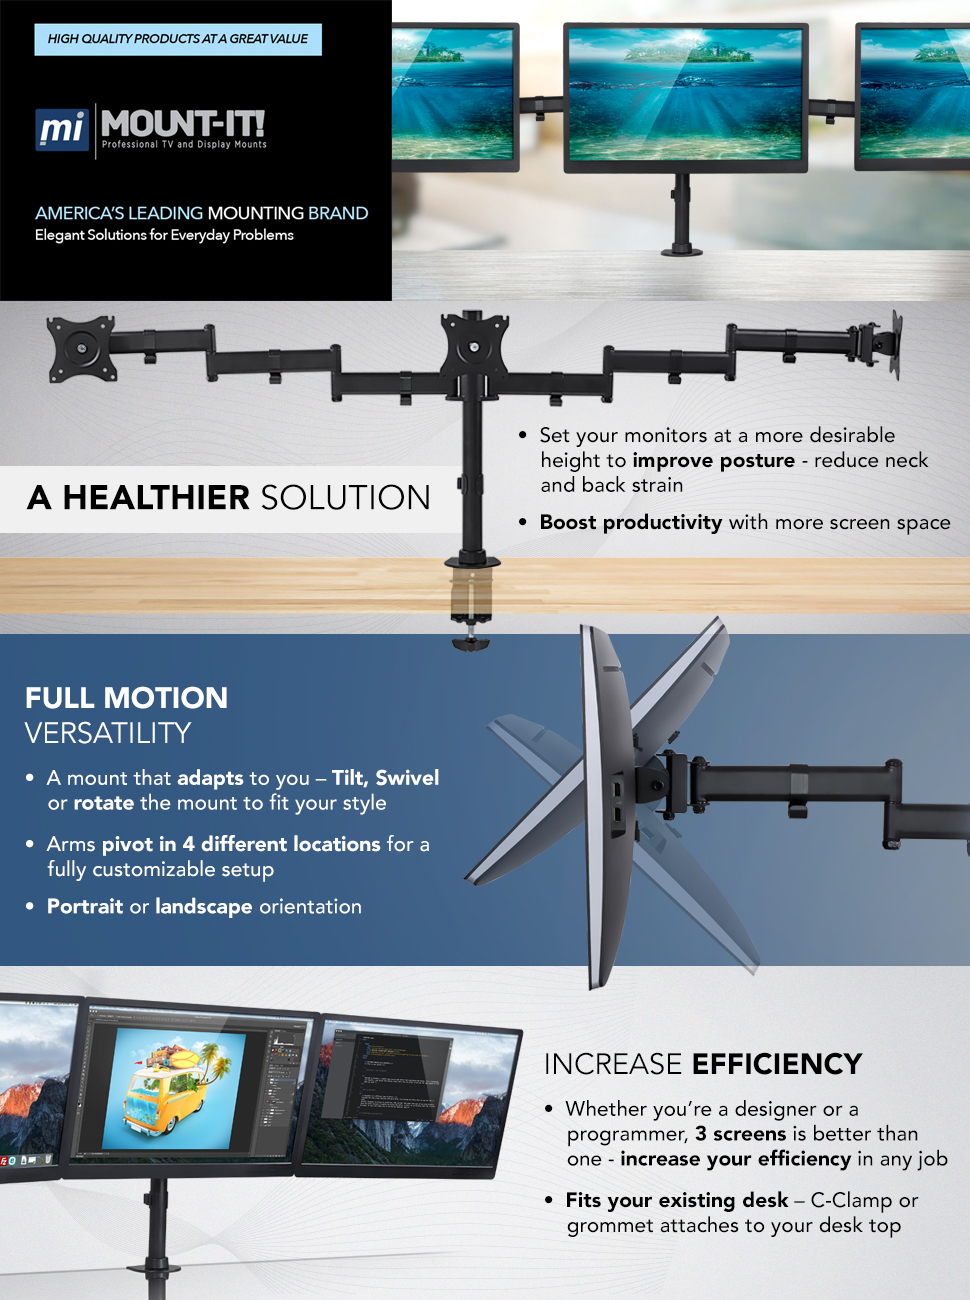 mountit triple monitor mount 3 screen desk stand for lcd computer monitors for 19 20 22 23 24 27 inch monitors vesa 75 and 100 compatible full motion